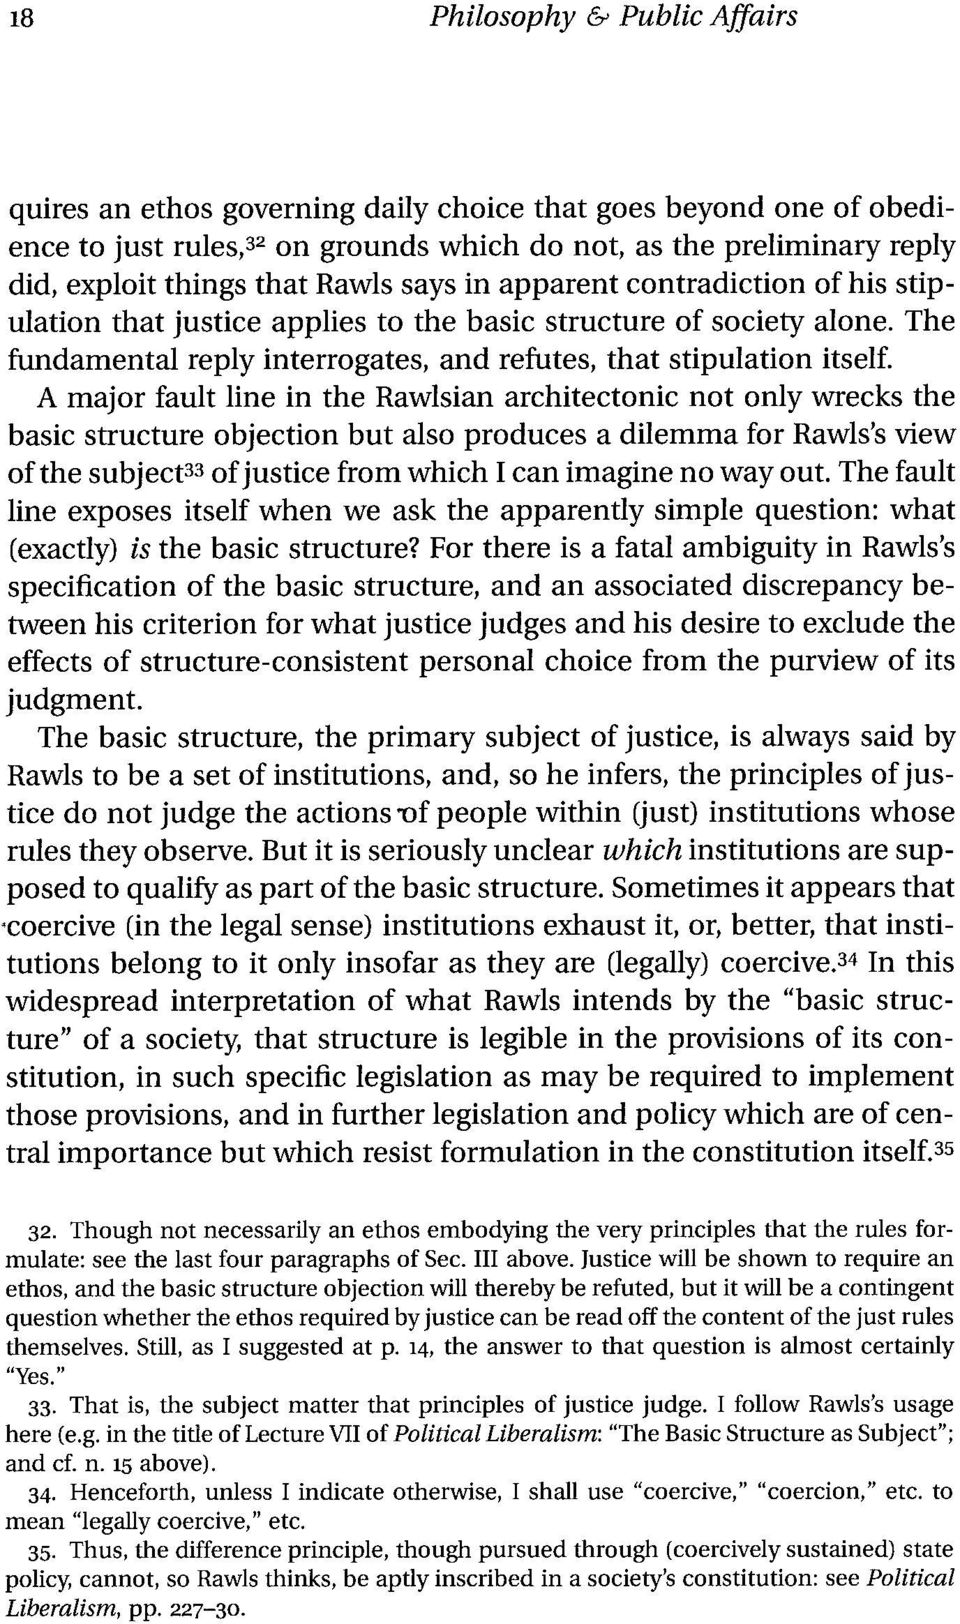 A major fault line in the Rawlsian architectonic not only wrecks the basic structure objection but also produces a dilemma for Rawls's view of the subject33 of justice from which I can imagine no way